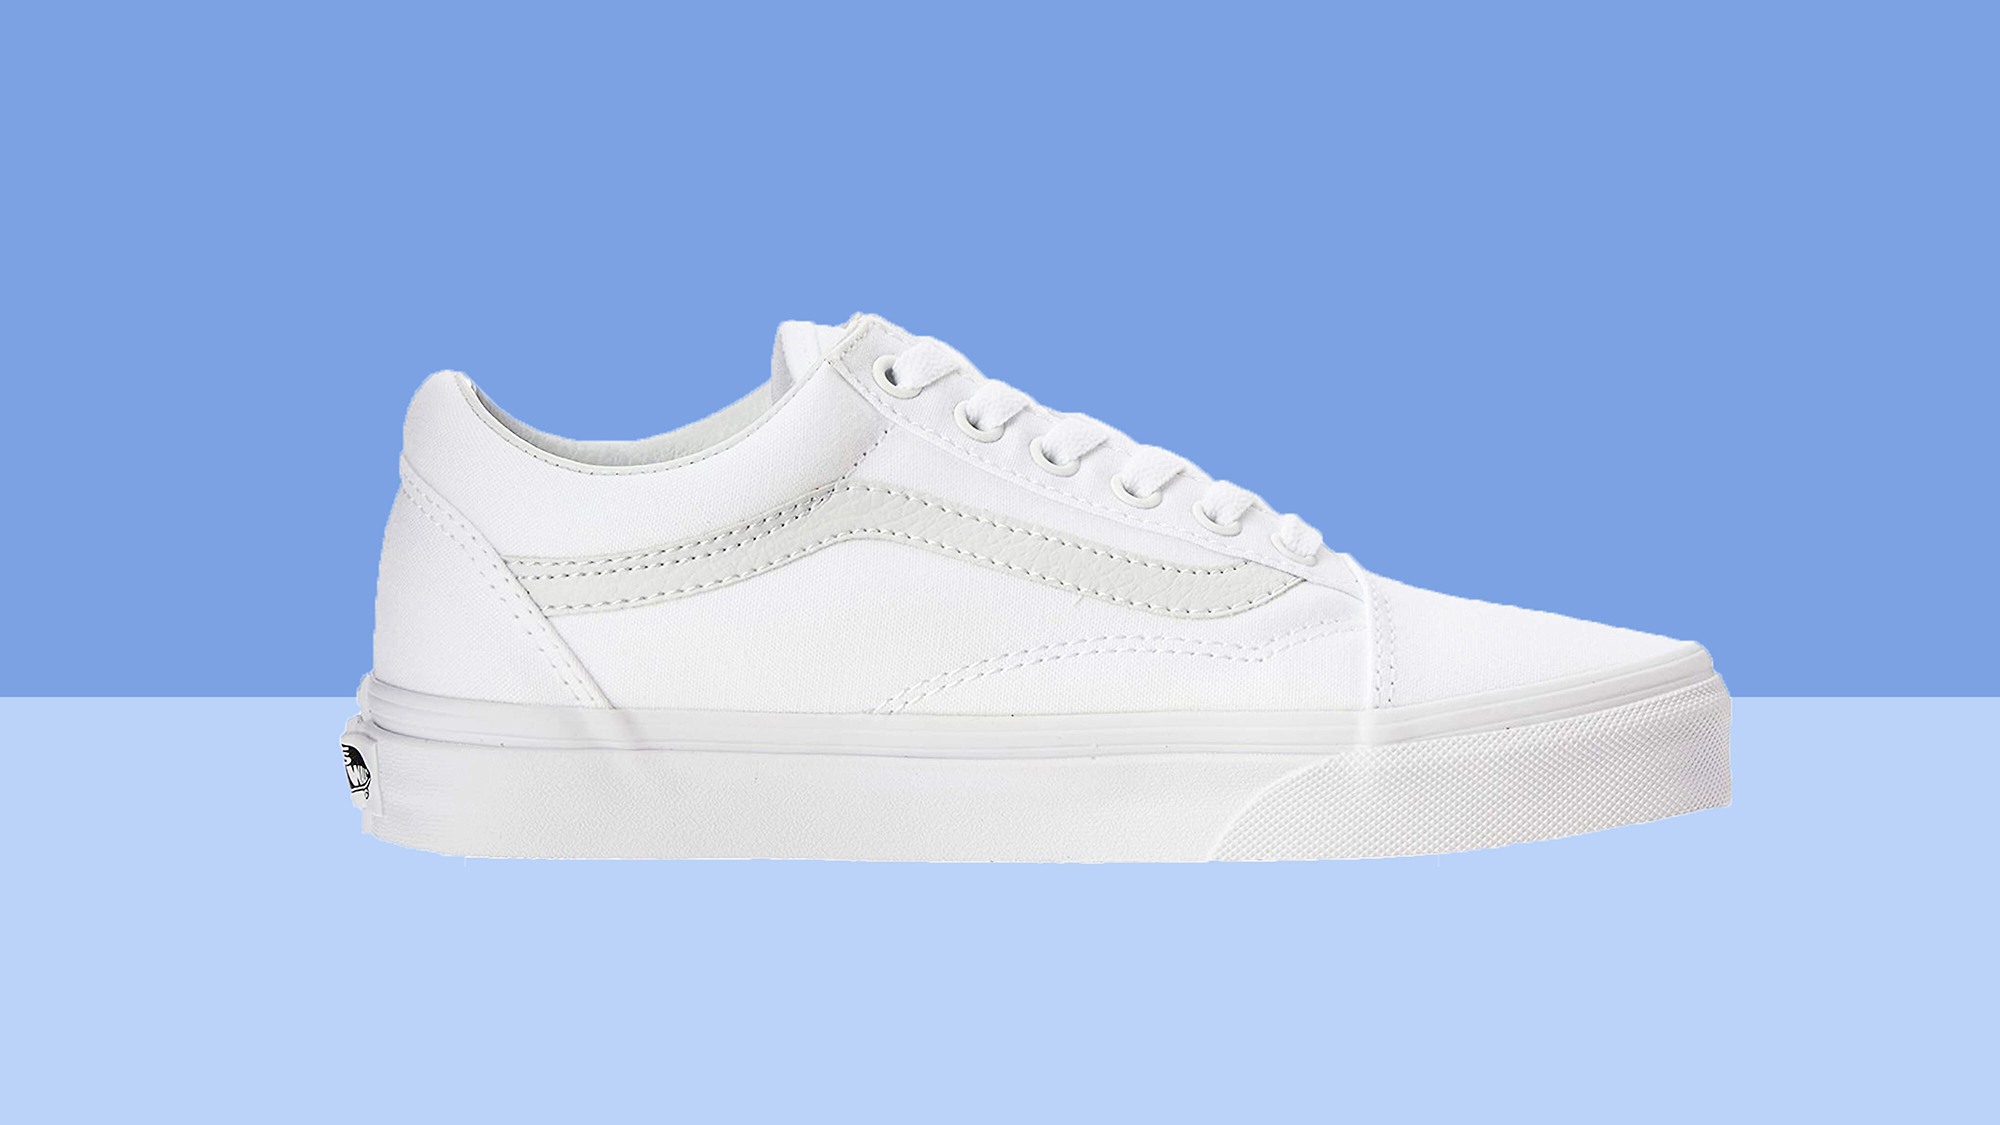 Vans Old Skool Shoes Are the Best Basic White Sneakers | Real Simple